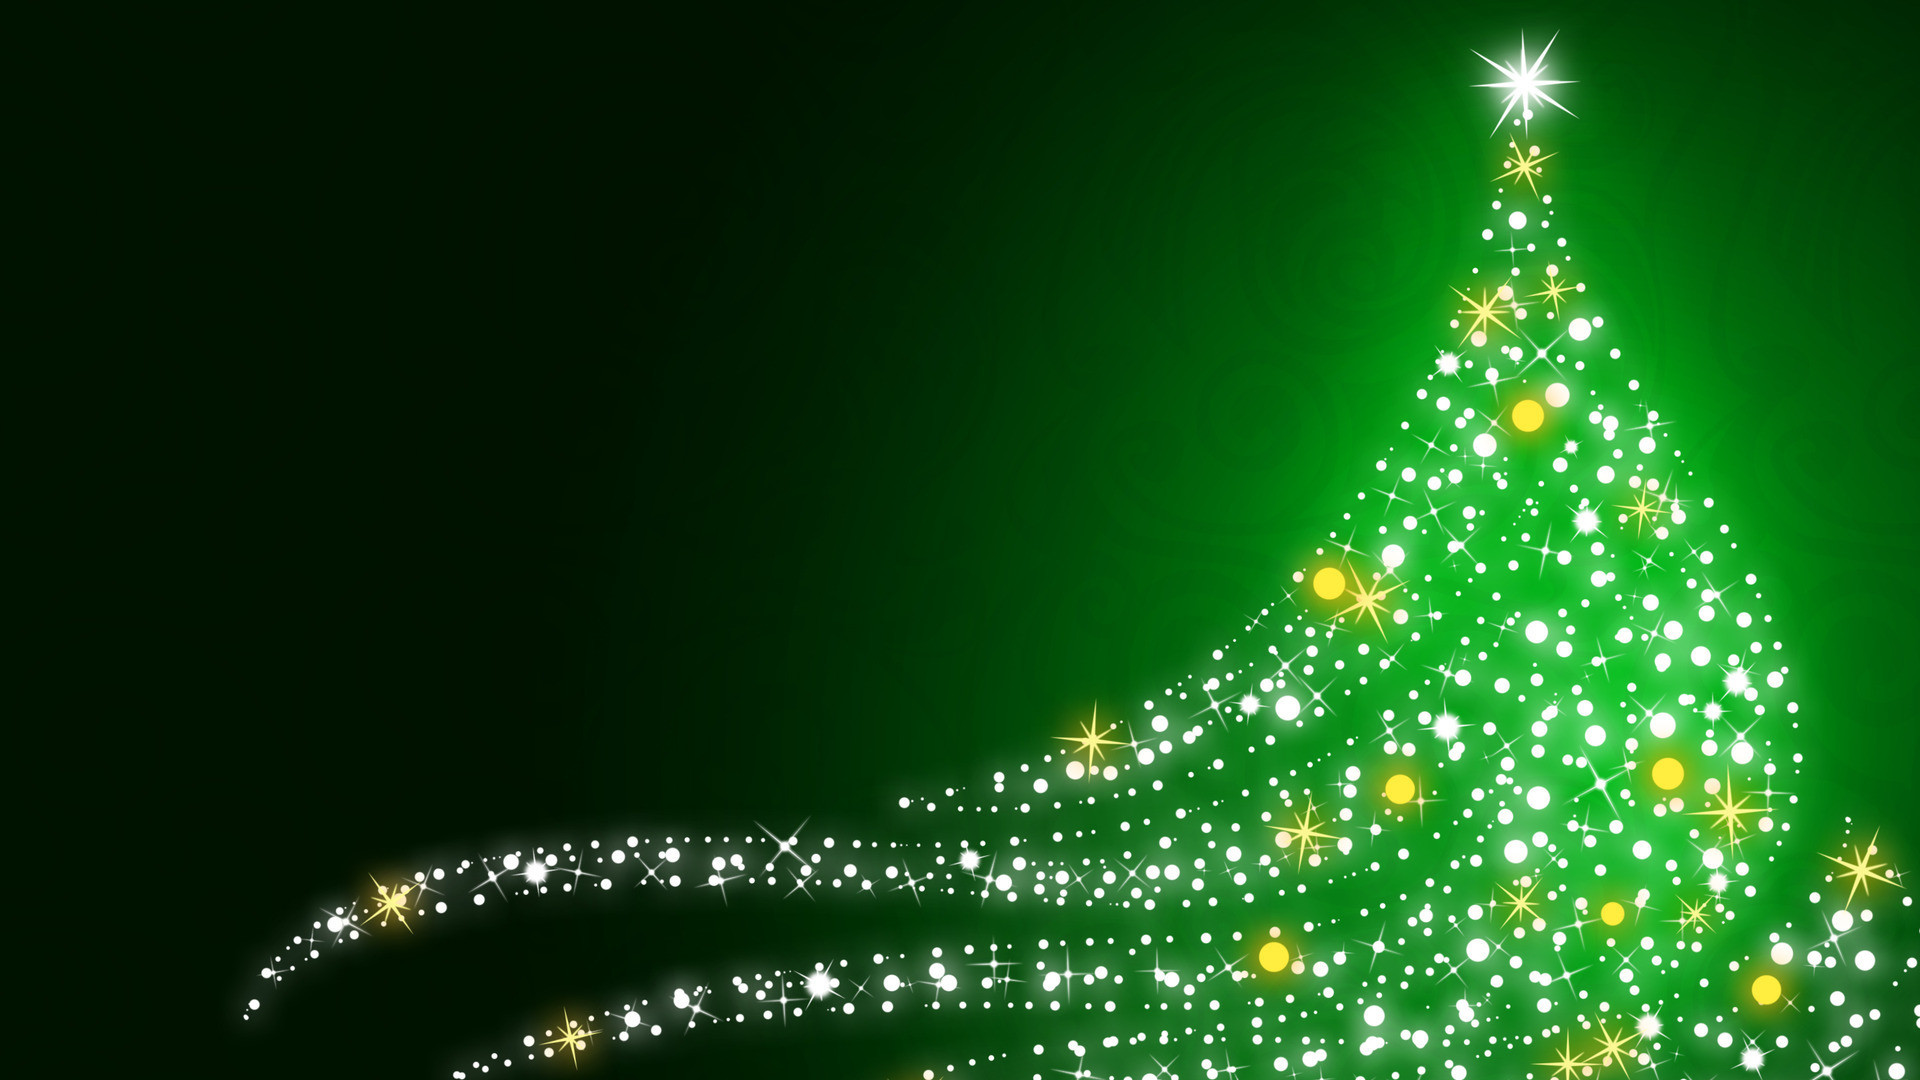 christmas picture backgrounds (51+ images)